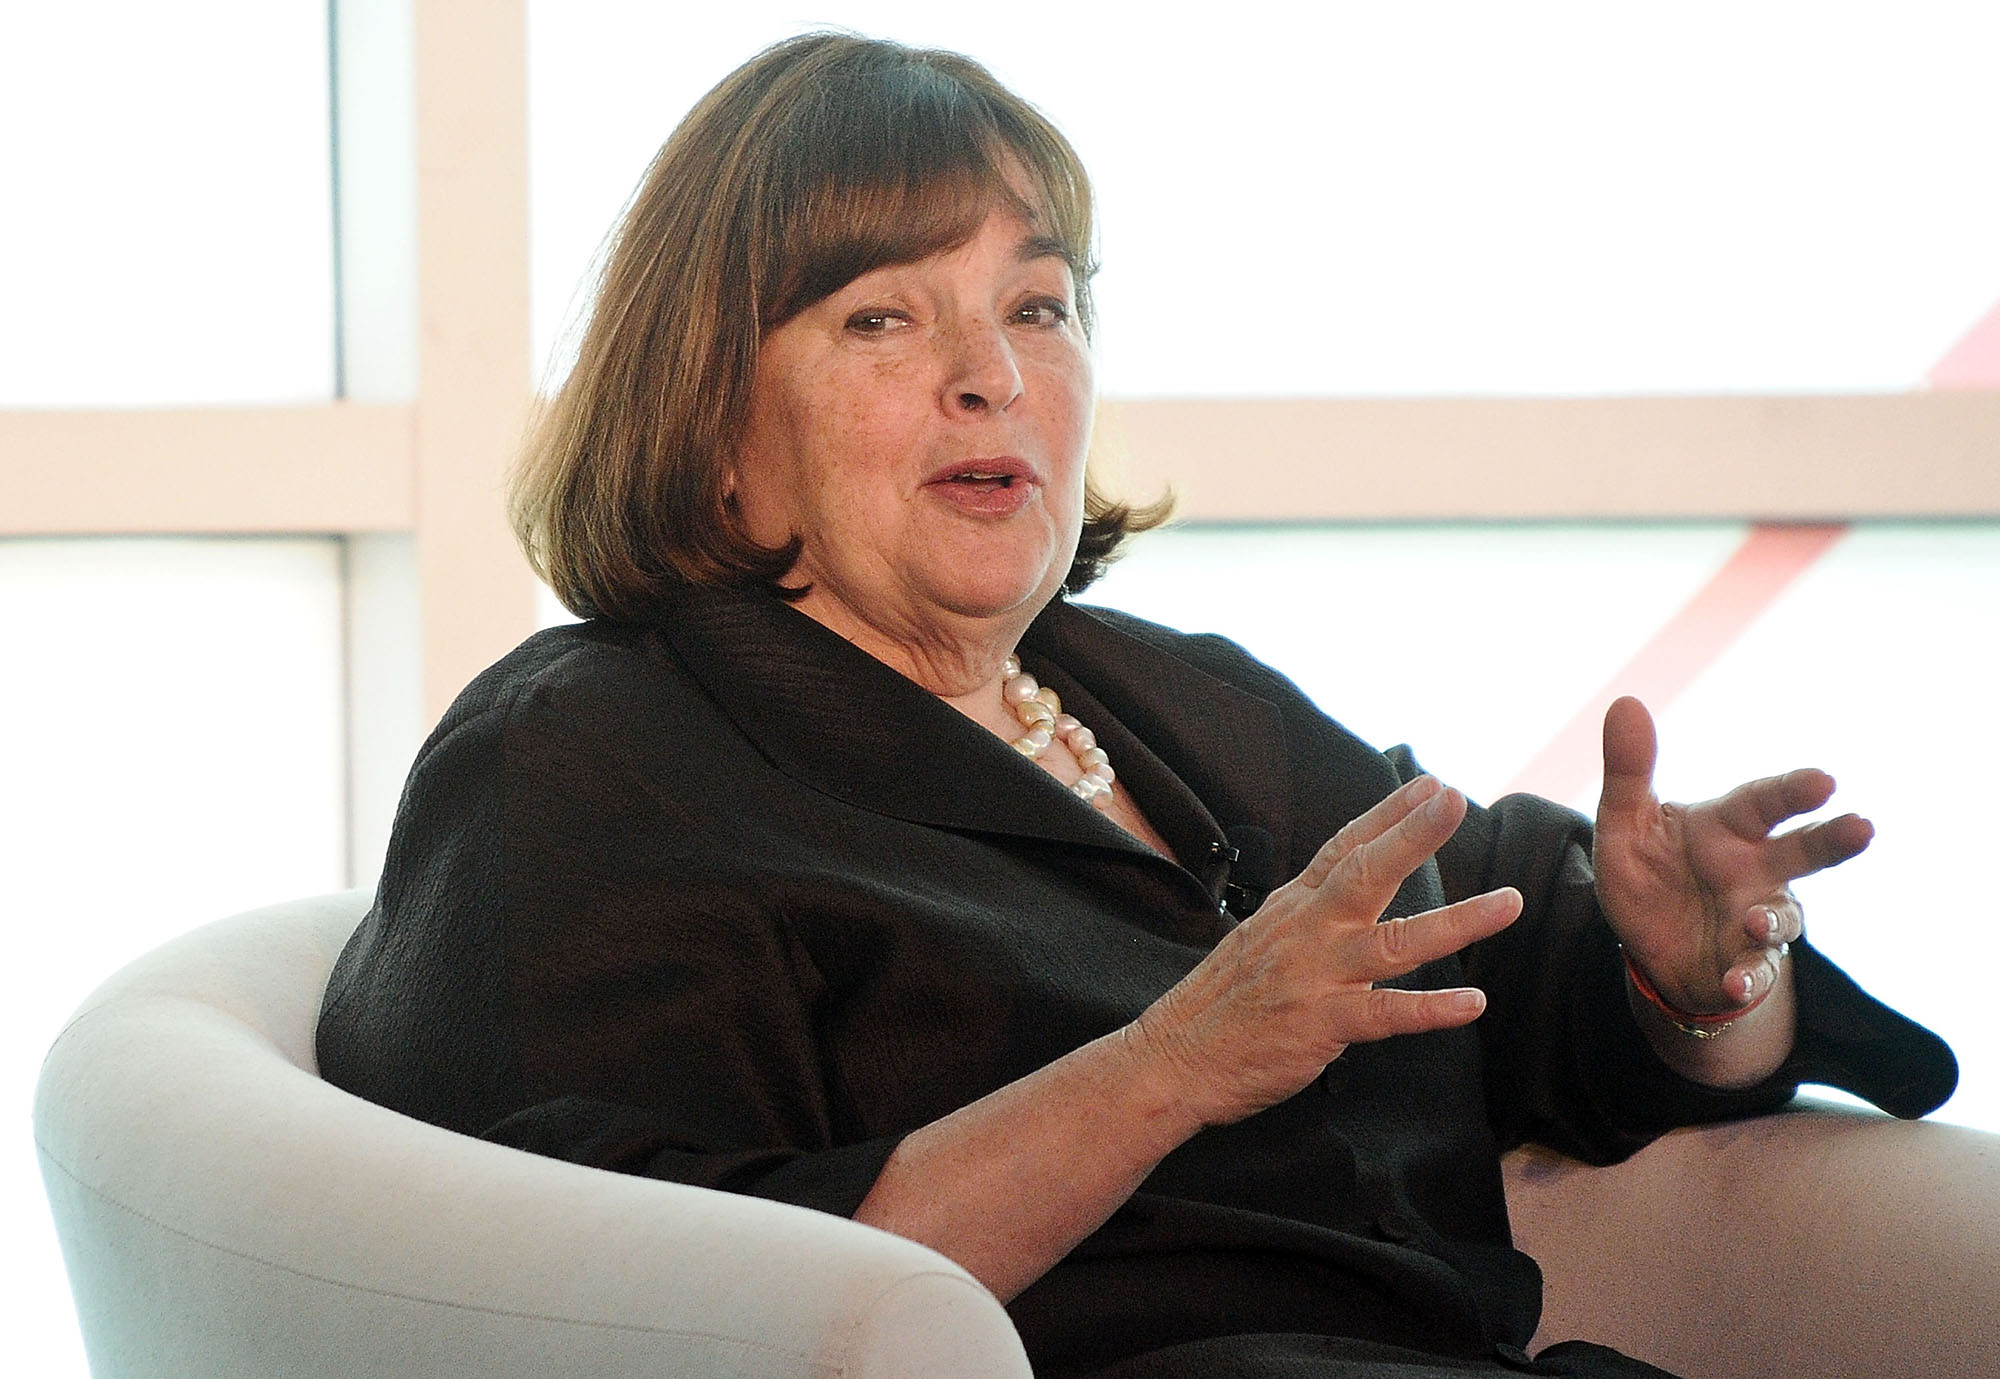 Ina Garten attends the 2015 Forbes Women's Summit: Transforming The Rules Of Engagement at Pier 60 on June 10, 2015 in New York City.  (Photo by Daniel Zuchnik/WireImage)